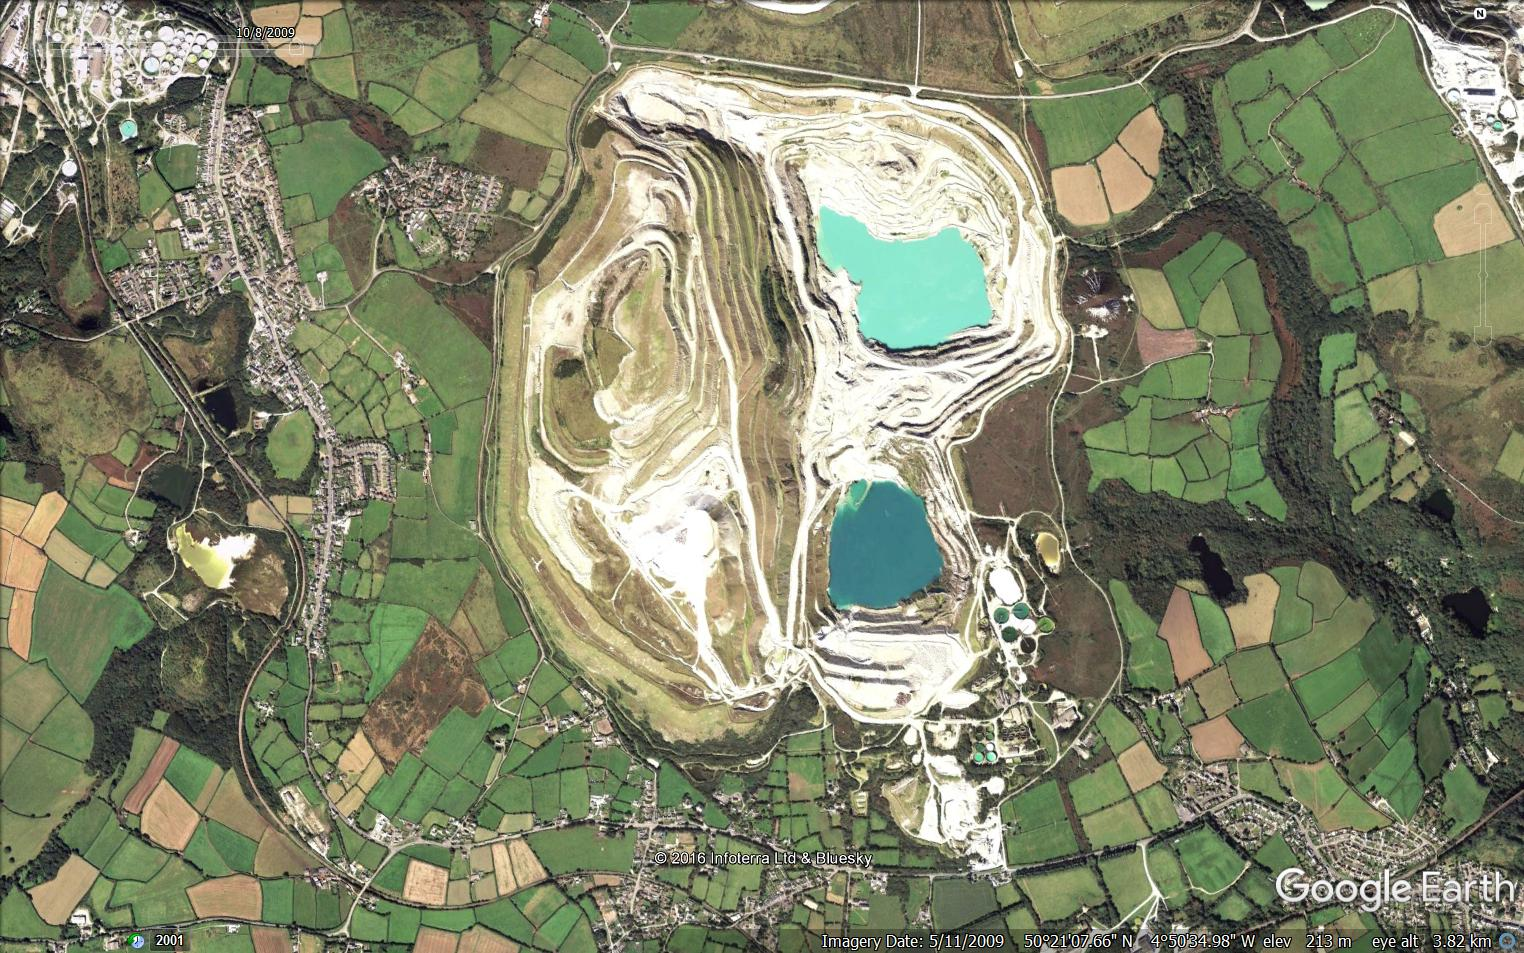 Blackpool pit 2009. Map courtesy of Google Earth satellite imagery